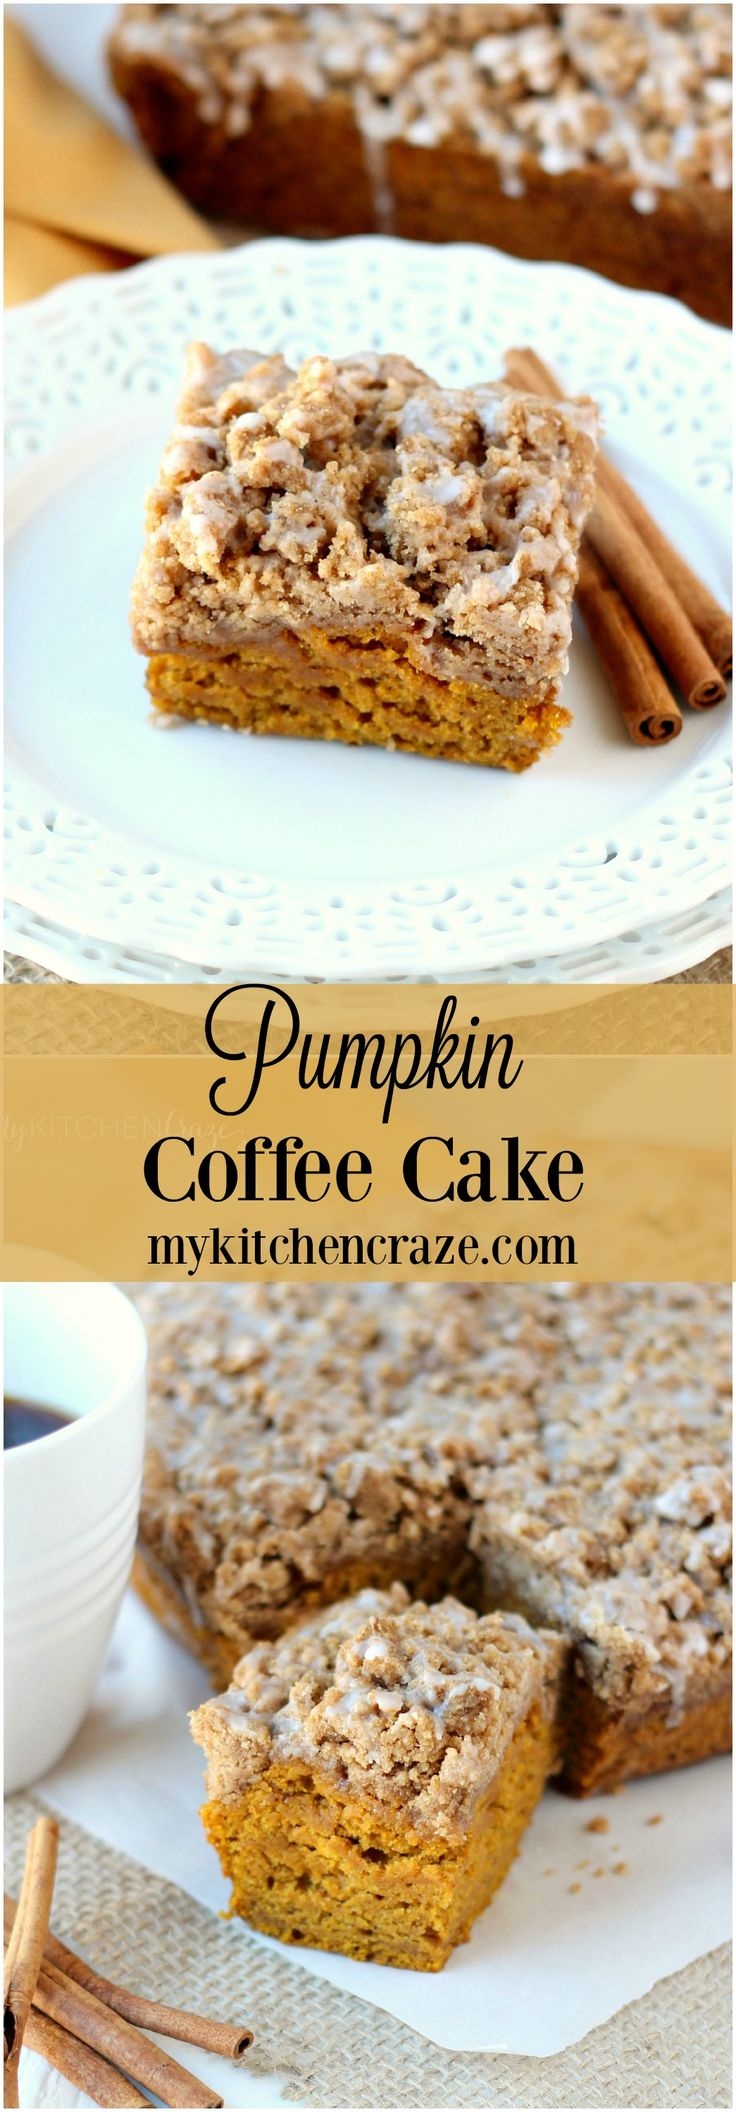 Pumpkin Coffee Cake ~ mykitchencraze.com ~ Delicious and moist, this Pumpkin Coffee Cake will have everyone running back for another slice.